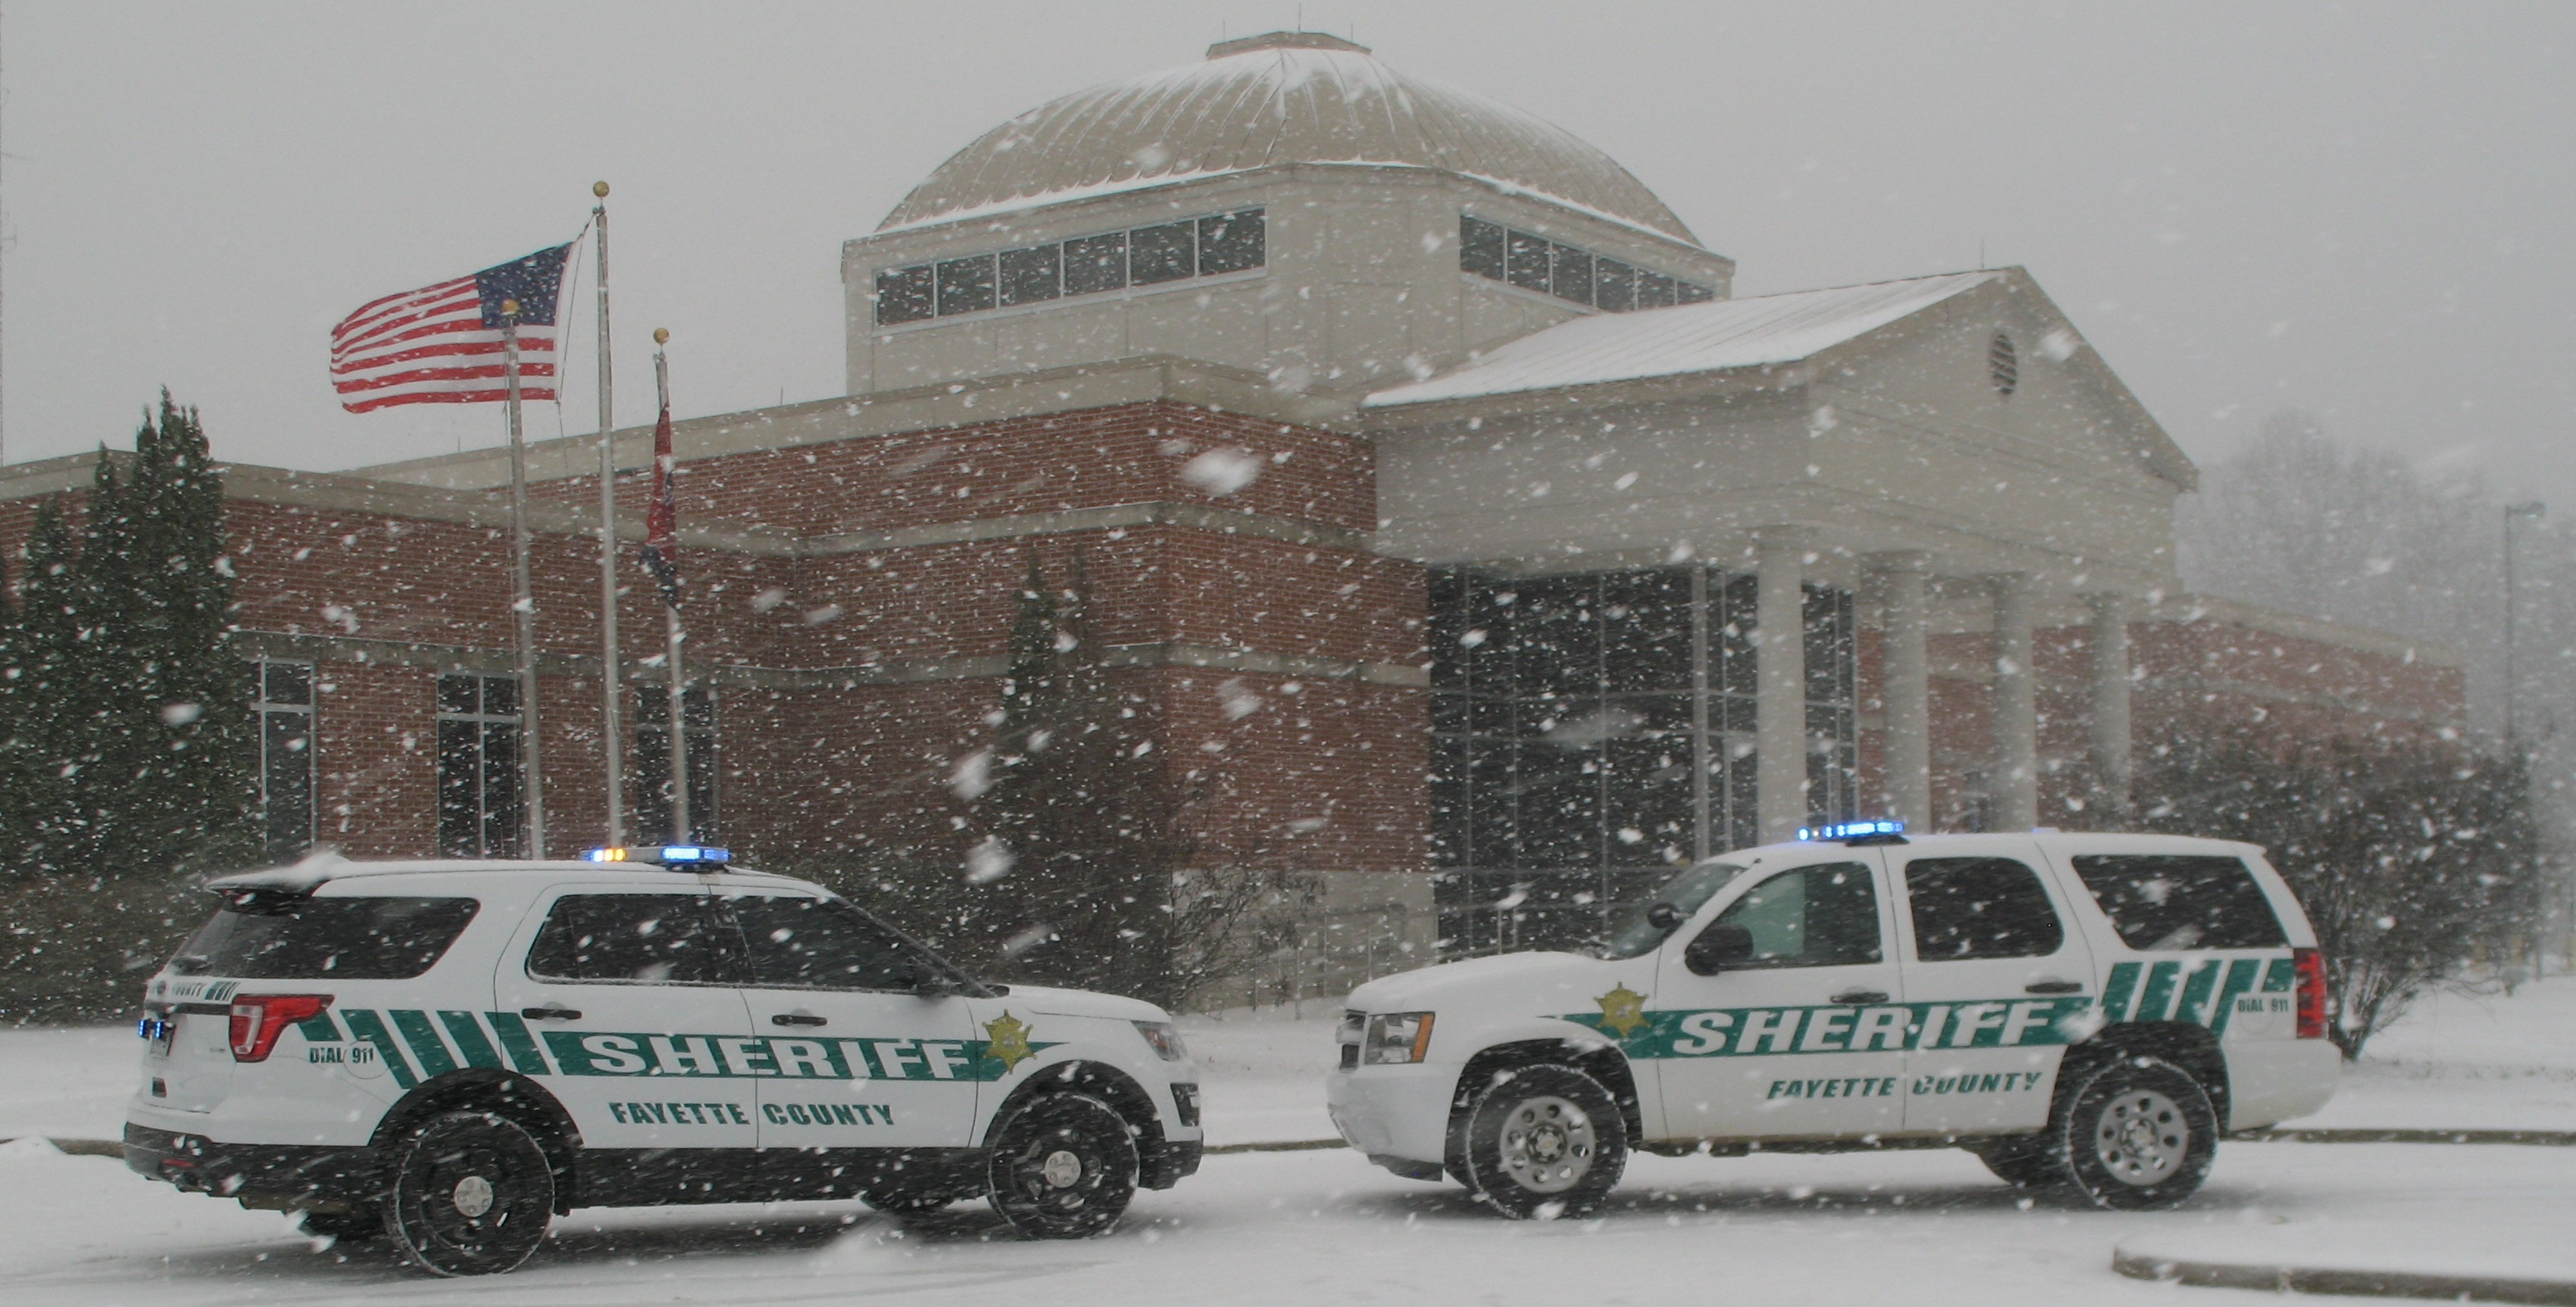 Winter at the Sheriff's Office